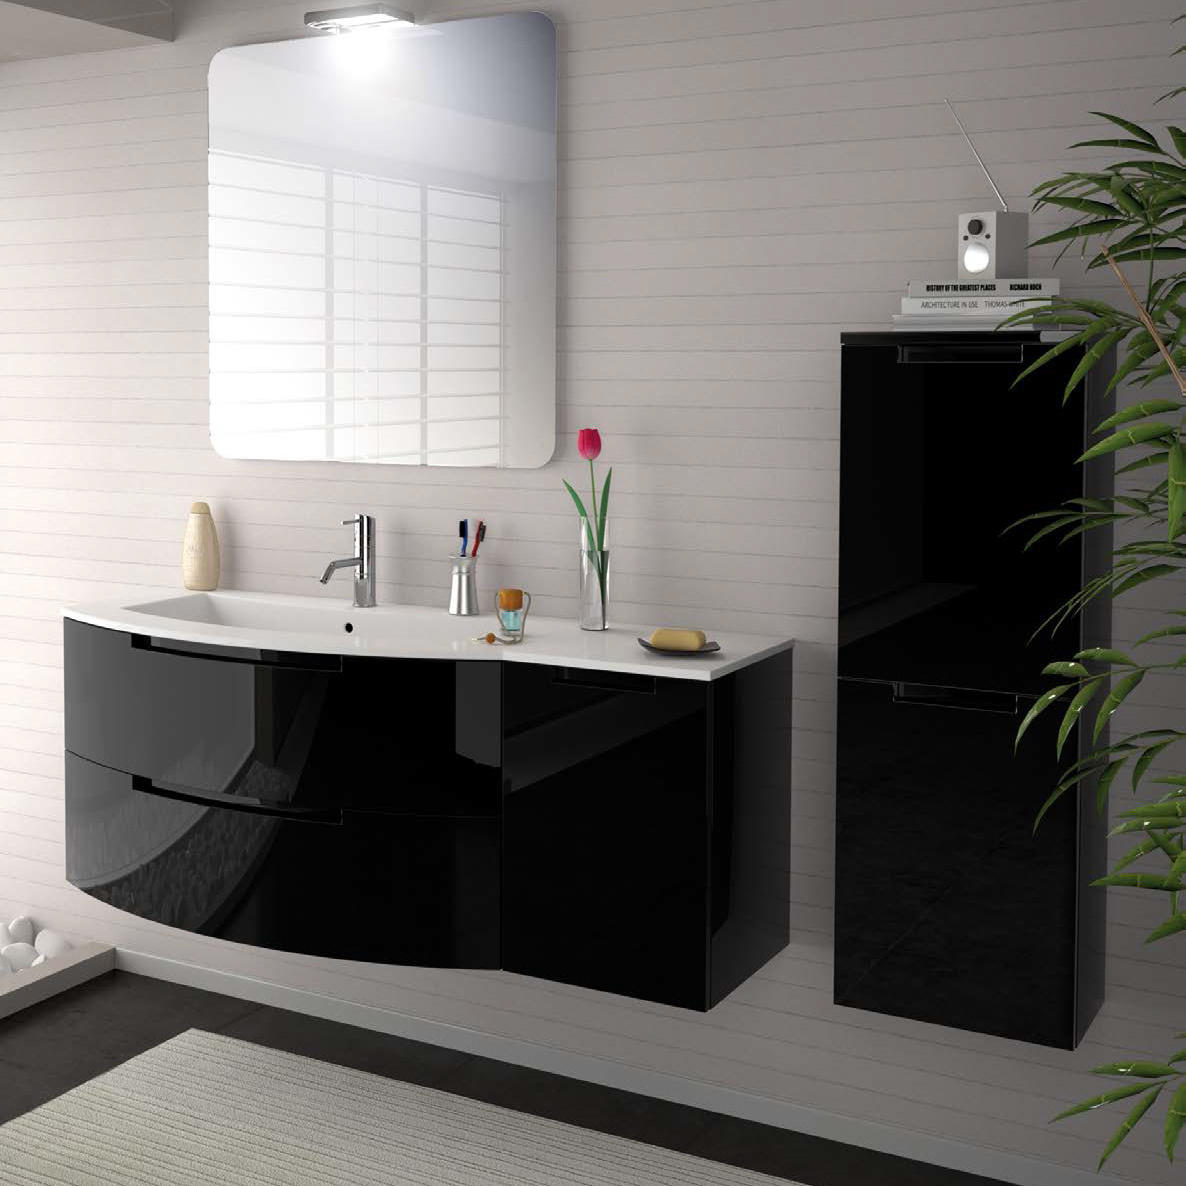 black main ideas inspirational lamp tiles hellorefuge text reno of new vanity vanities light elm mutina bathroom west